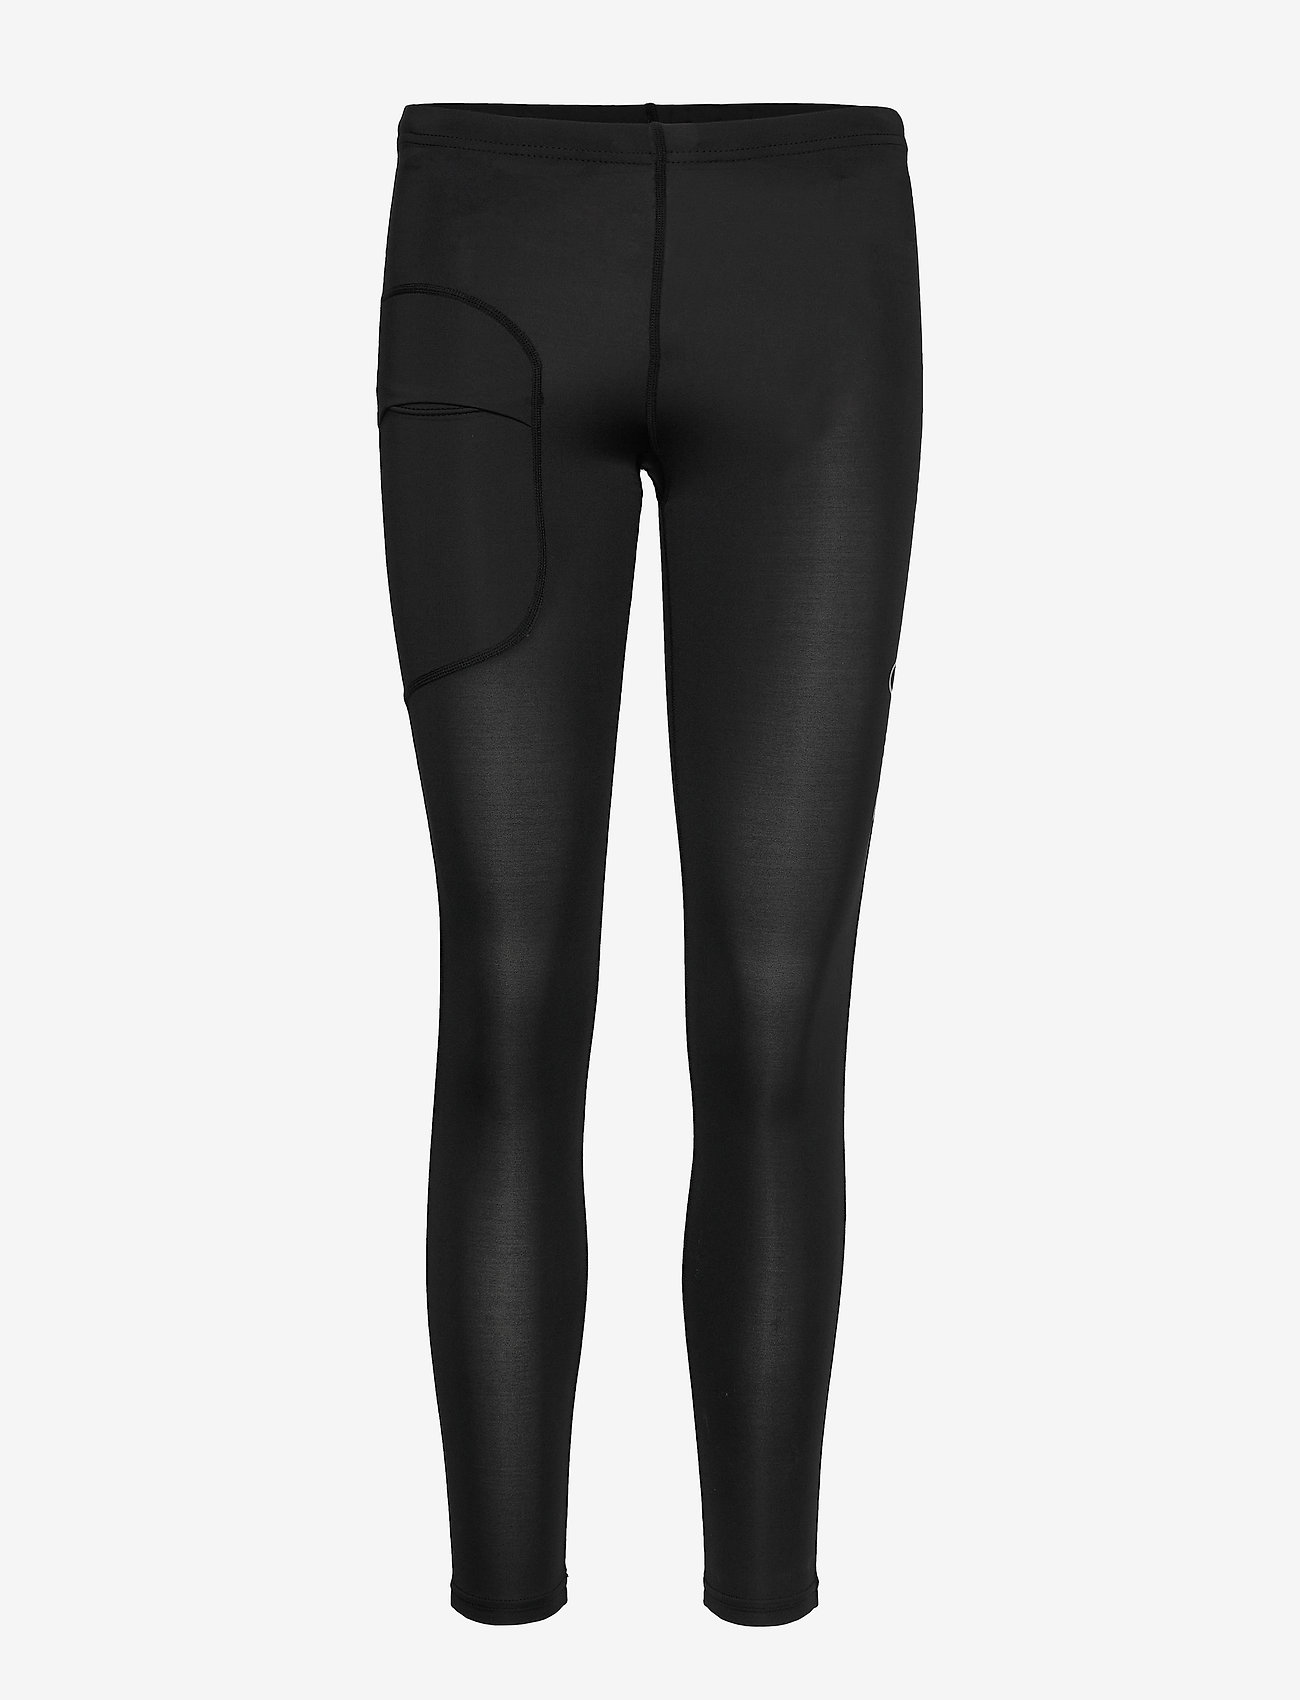 Sail Racing - W RACE TIGHTS - running & training tights - carbon - 0